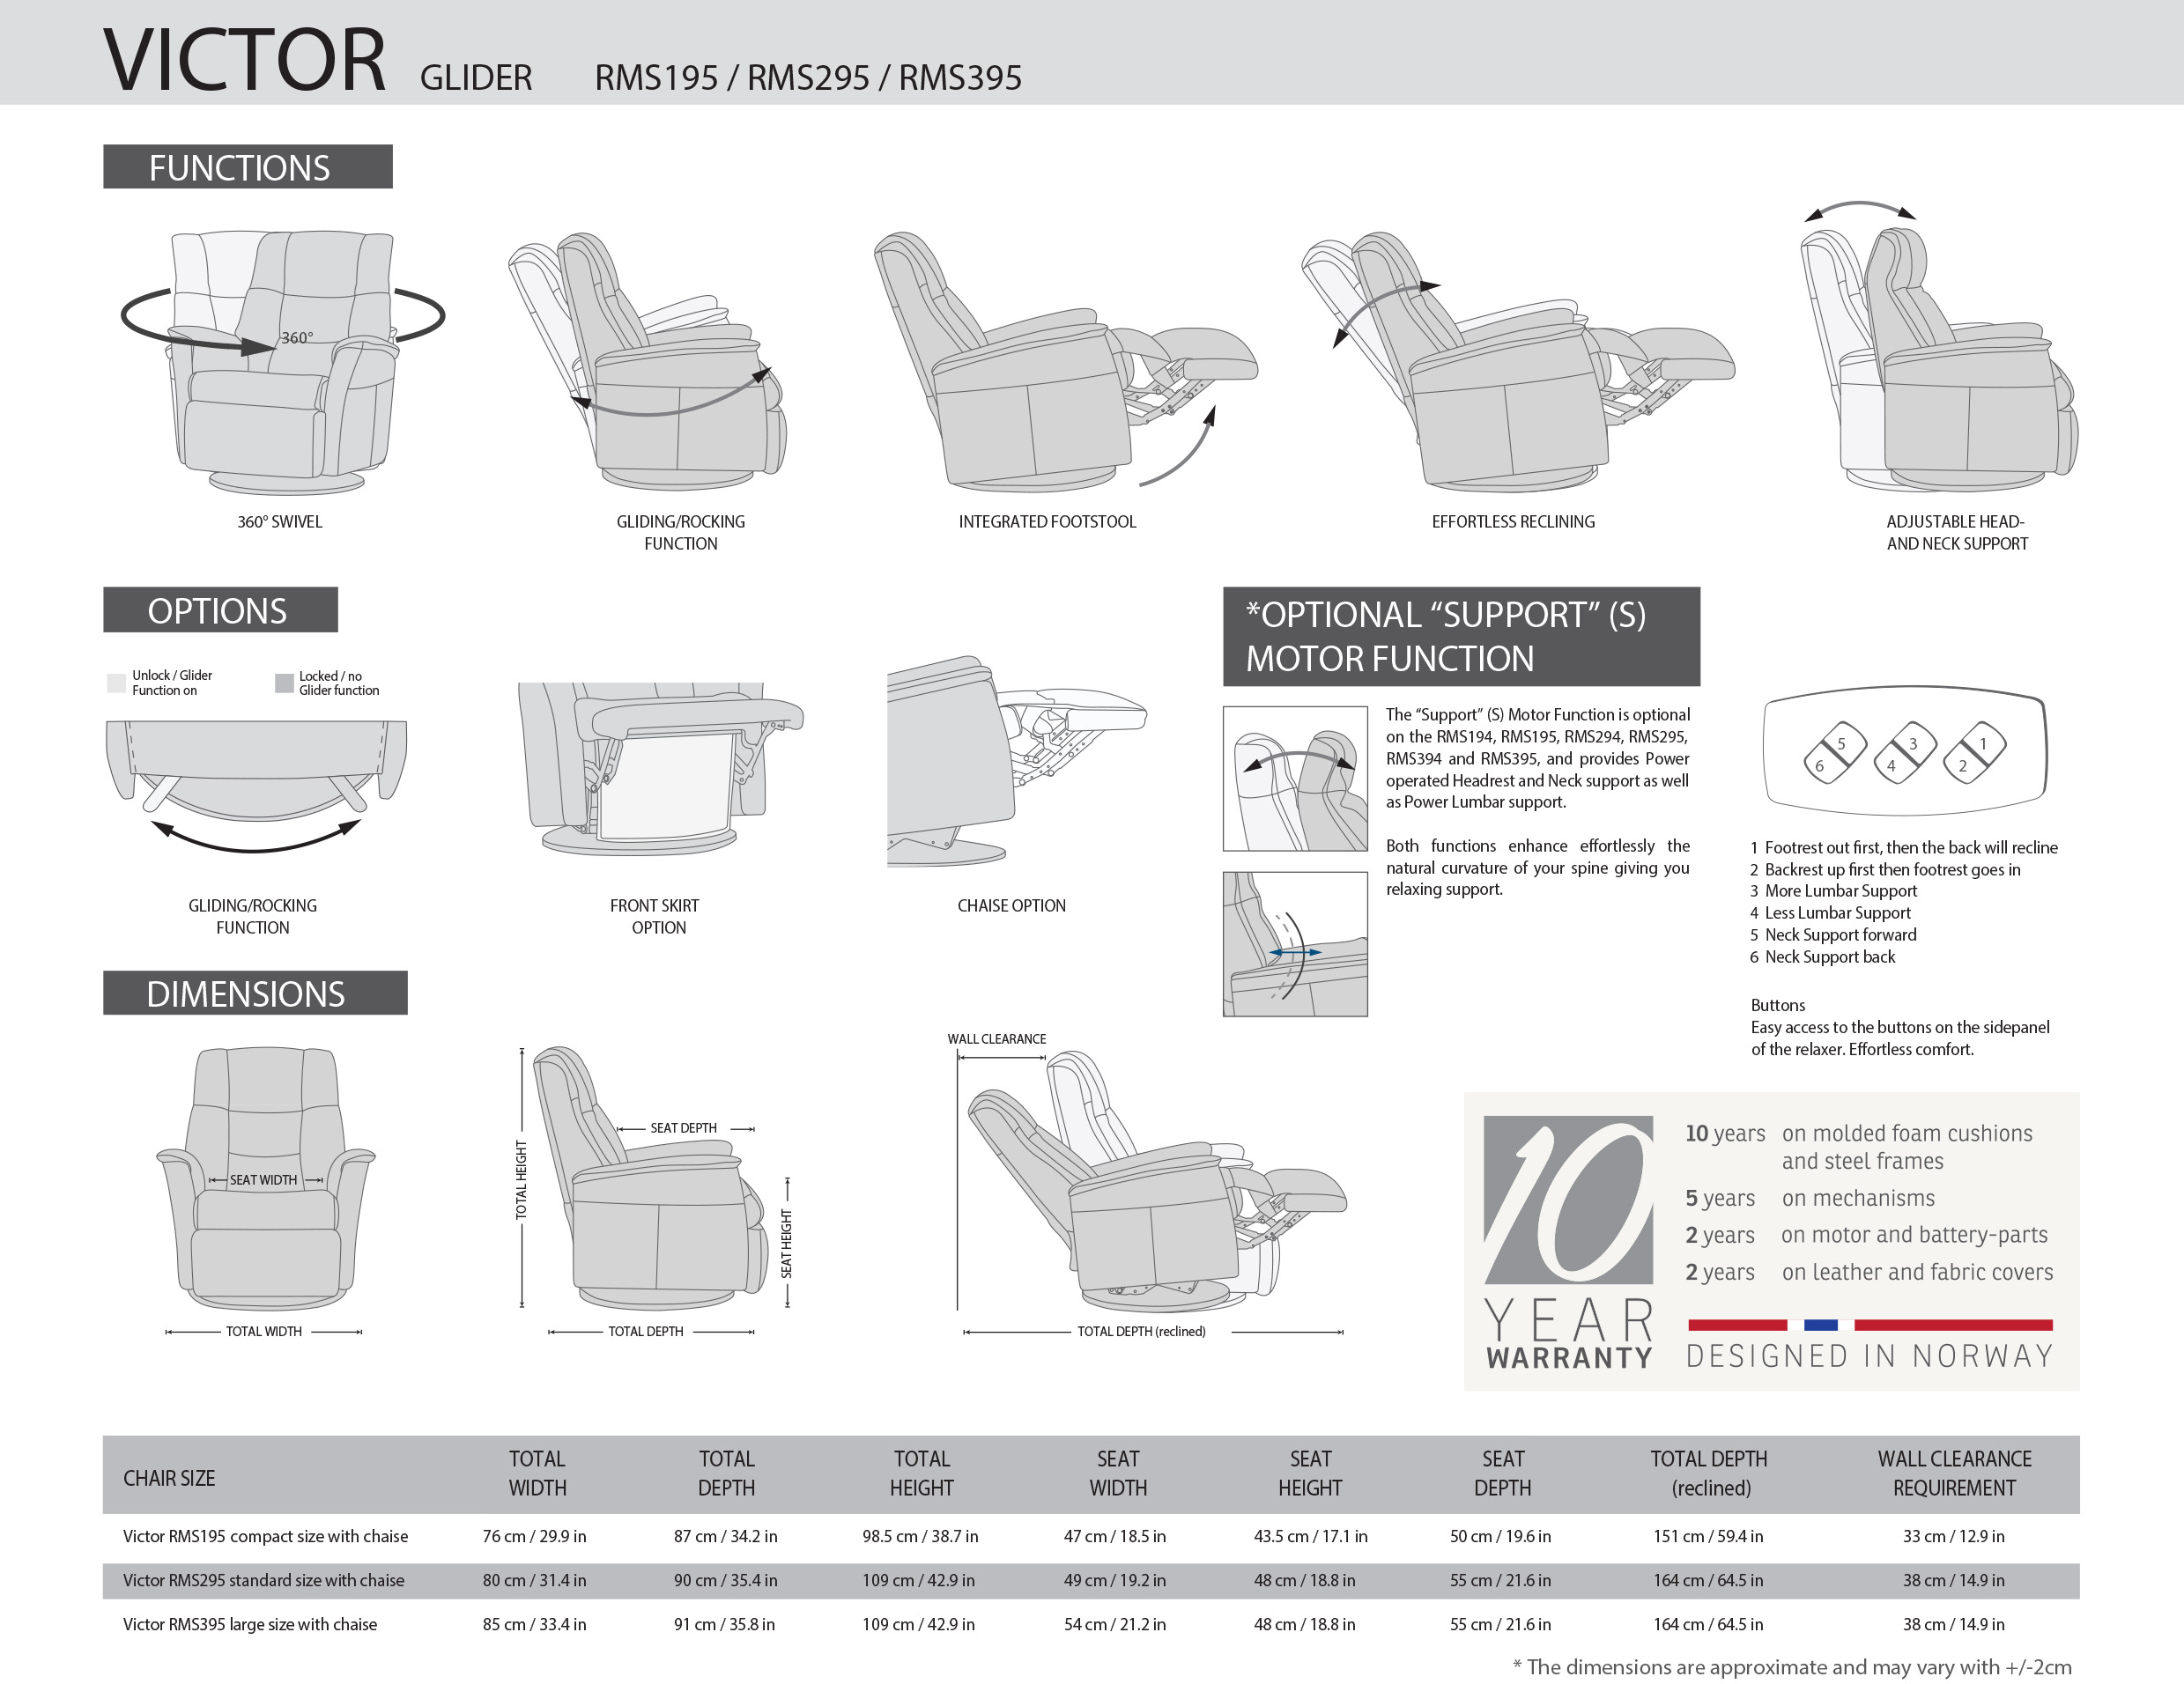 IMG Victor RMS Recliner Dimensions